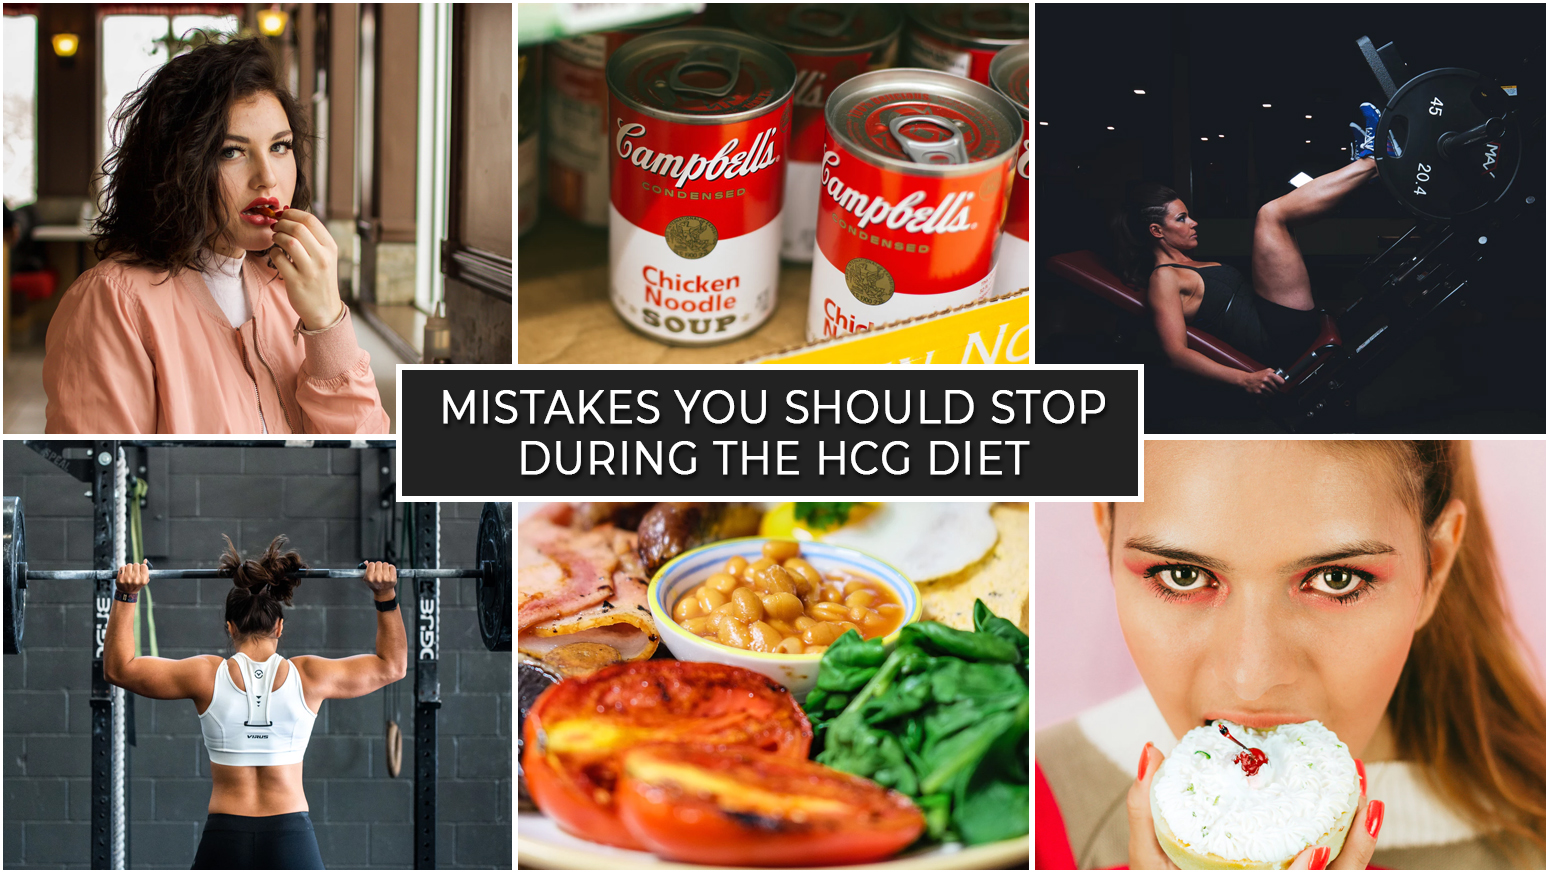 MISTAKES YOU SHOULD STOP DURING THE HCG DIET